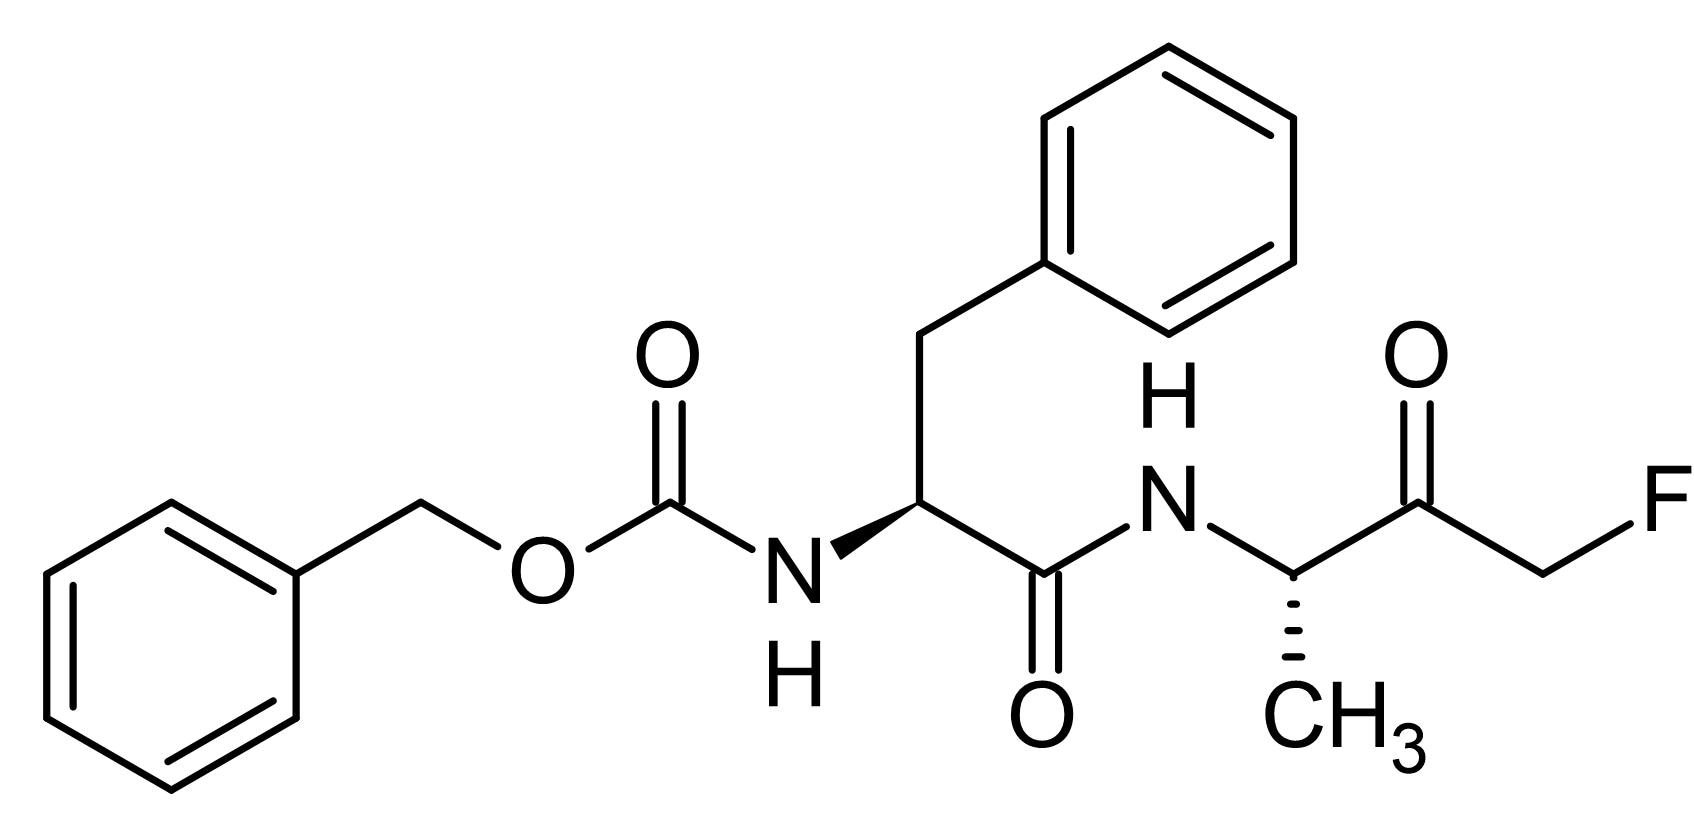 Chemical Structure - Z-FA-FMK, Cysteine protease inhibitor (ab141484)